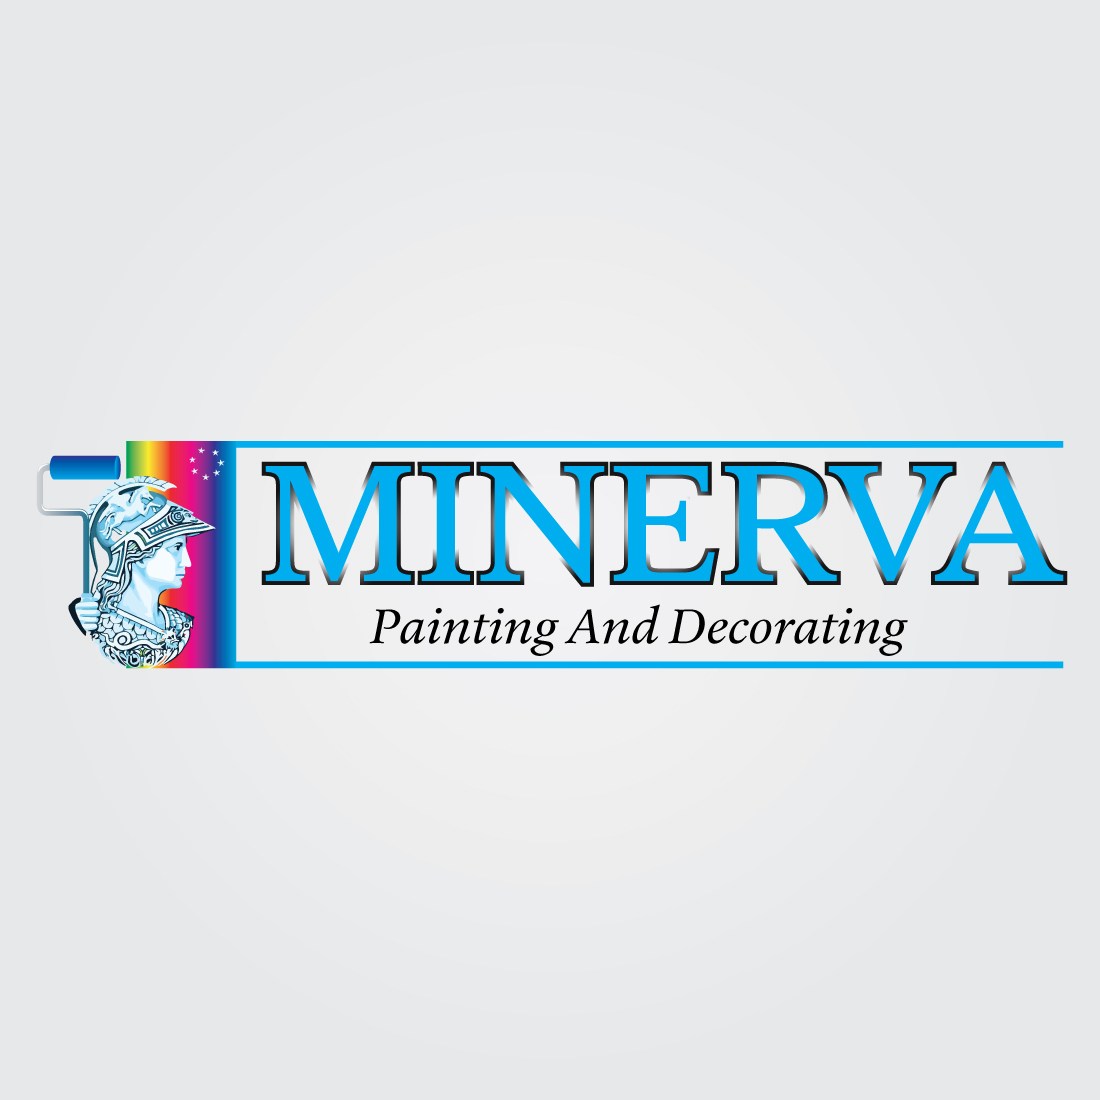 Logo Design by Dan Cristian - Entry No. 77 in the Logo Design Contest New Logo Design for Minerva Painting & Decorating Ltd..